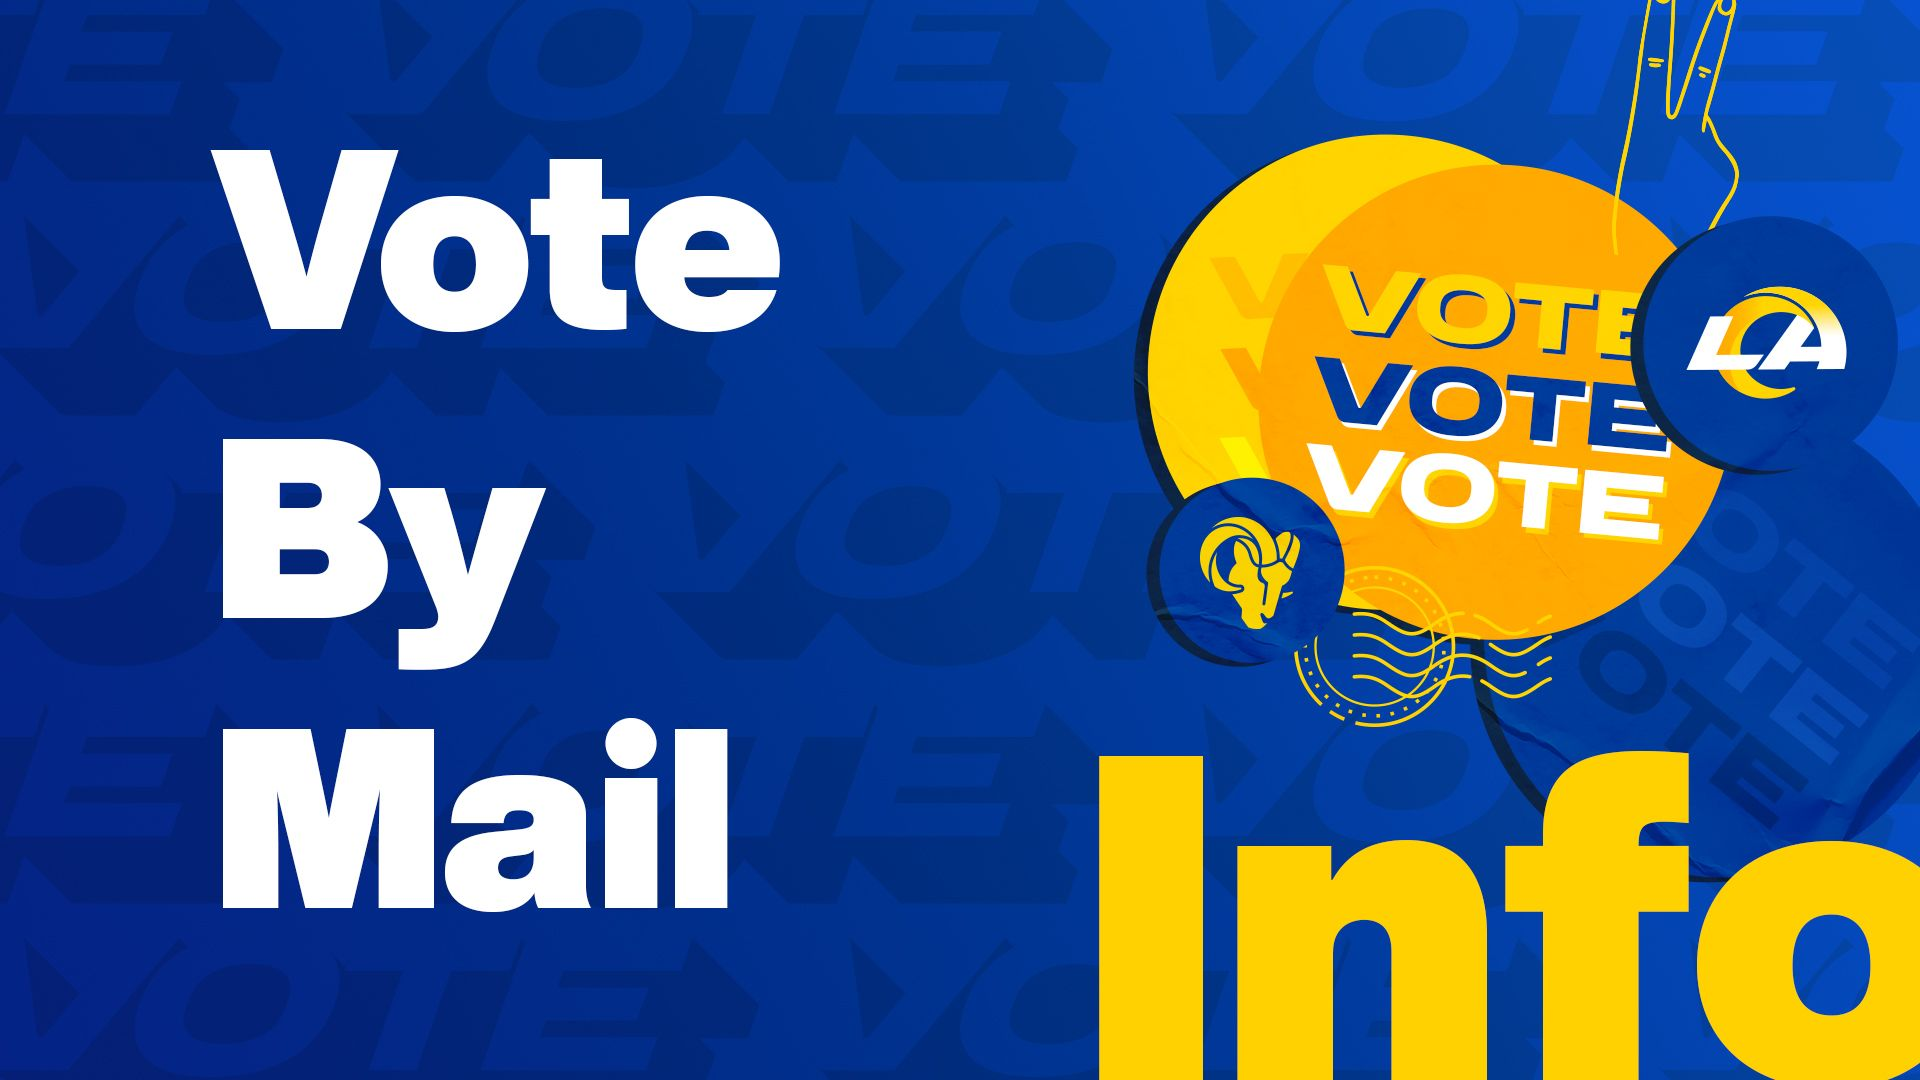 vote-by-mail-rtv-page